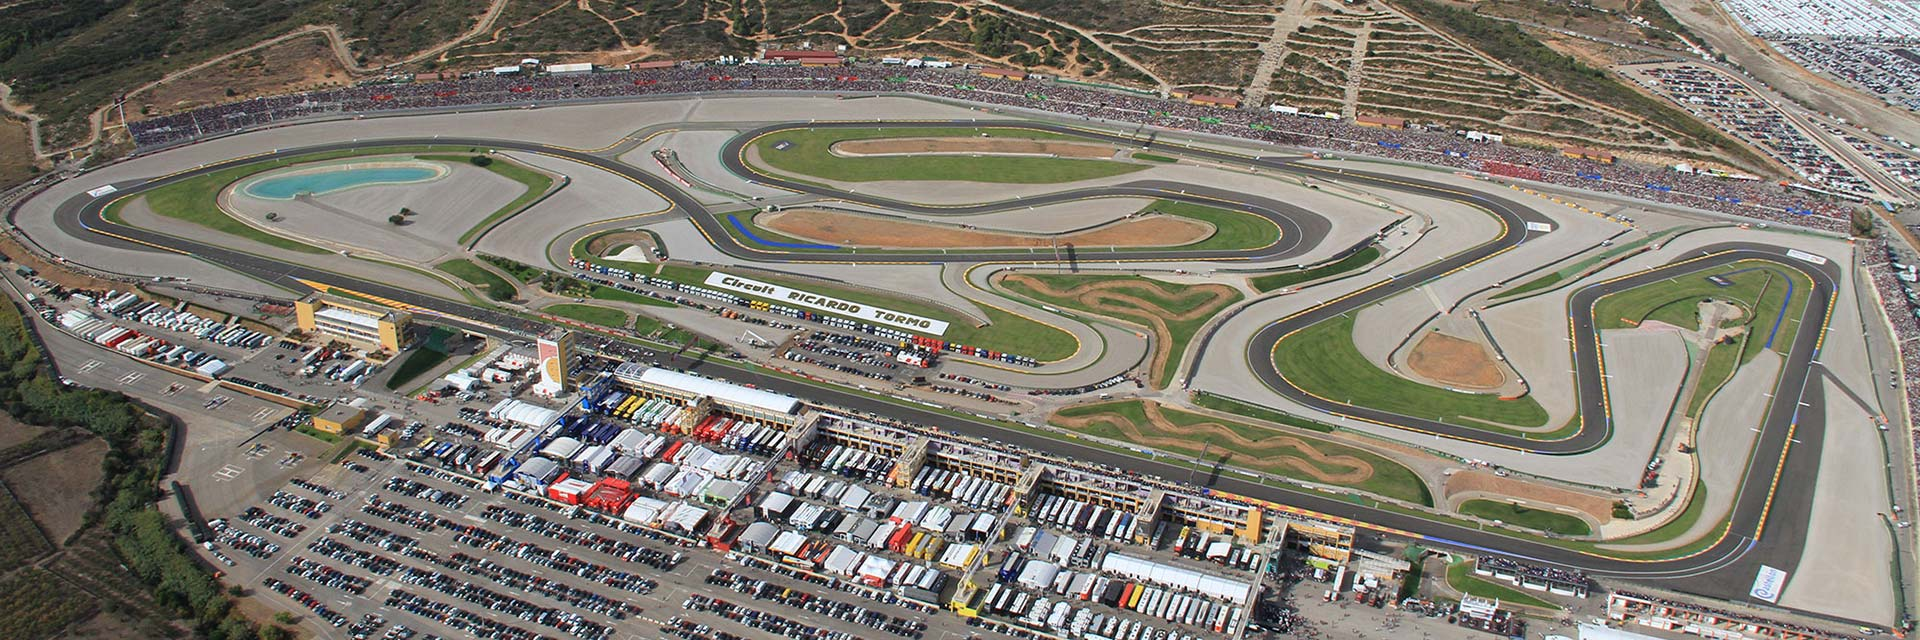 GEDLICH Racing - Racetrack Valencia